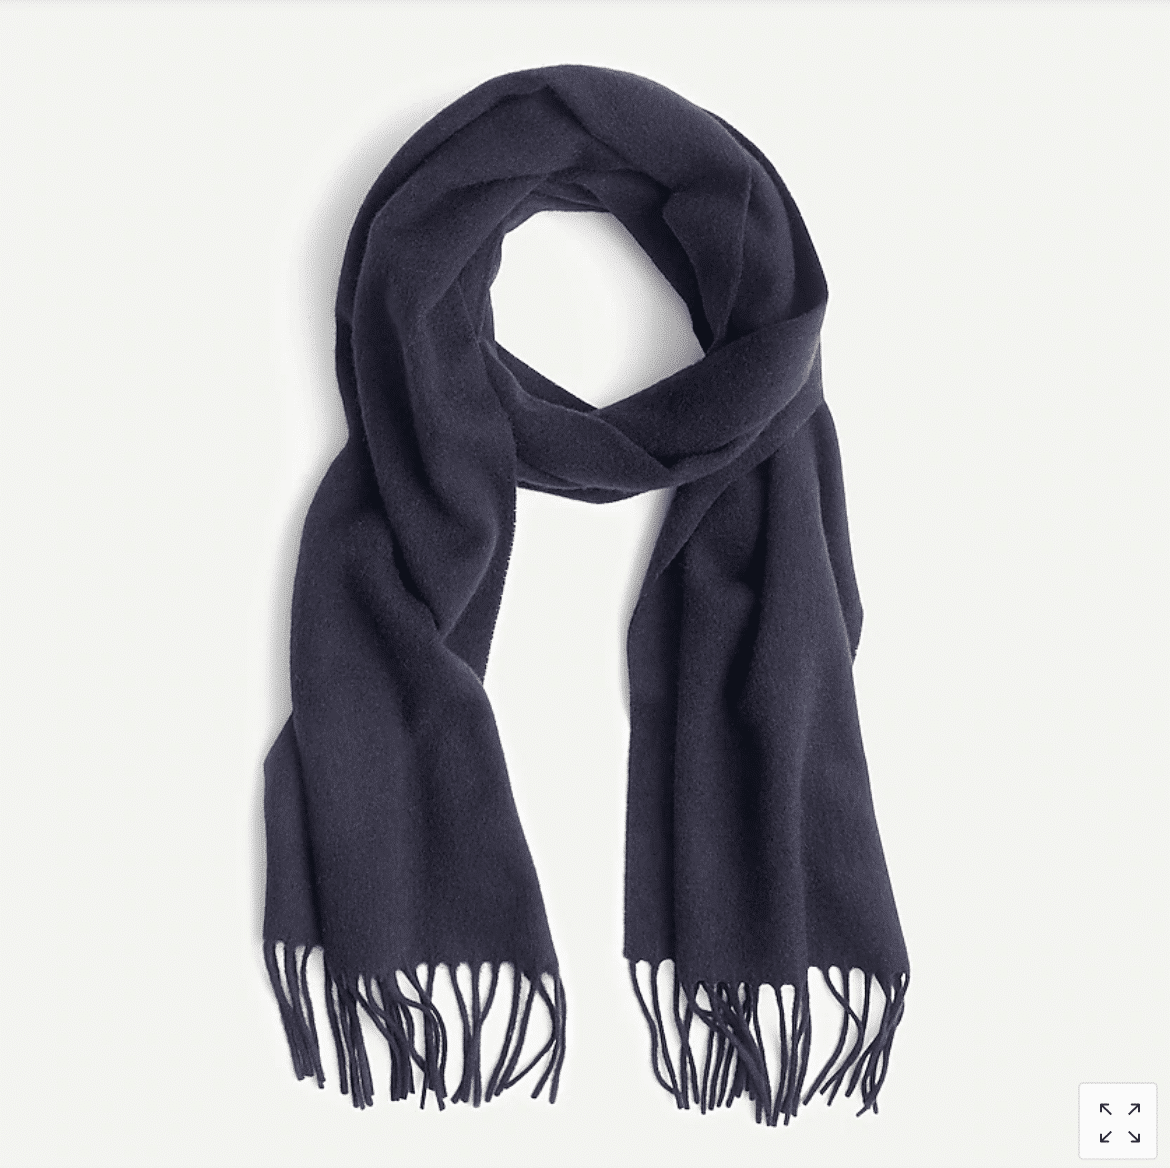 best gifts for him 100% cashmere scarf